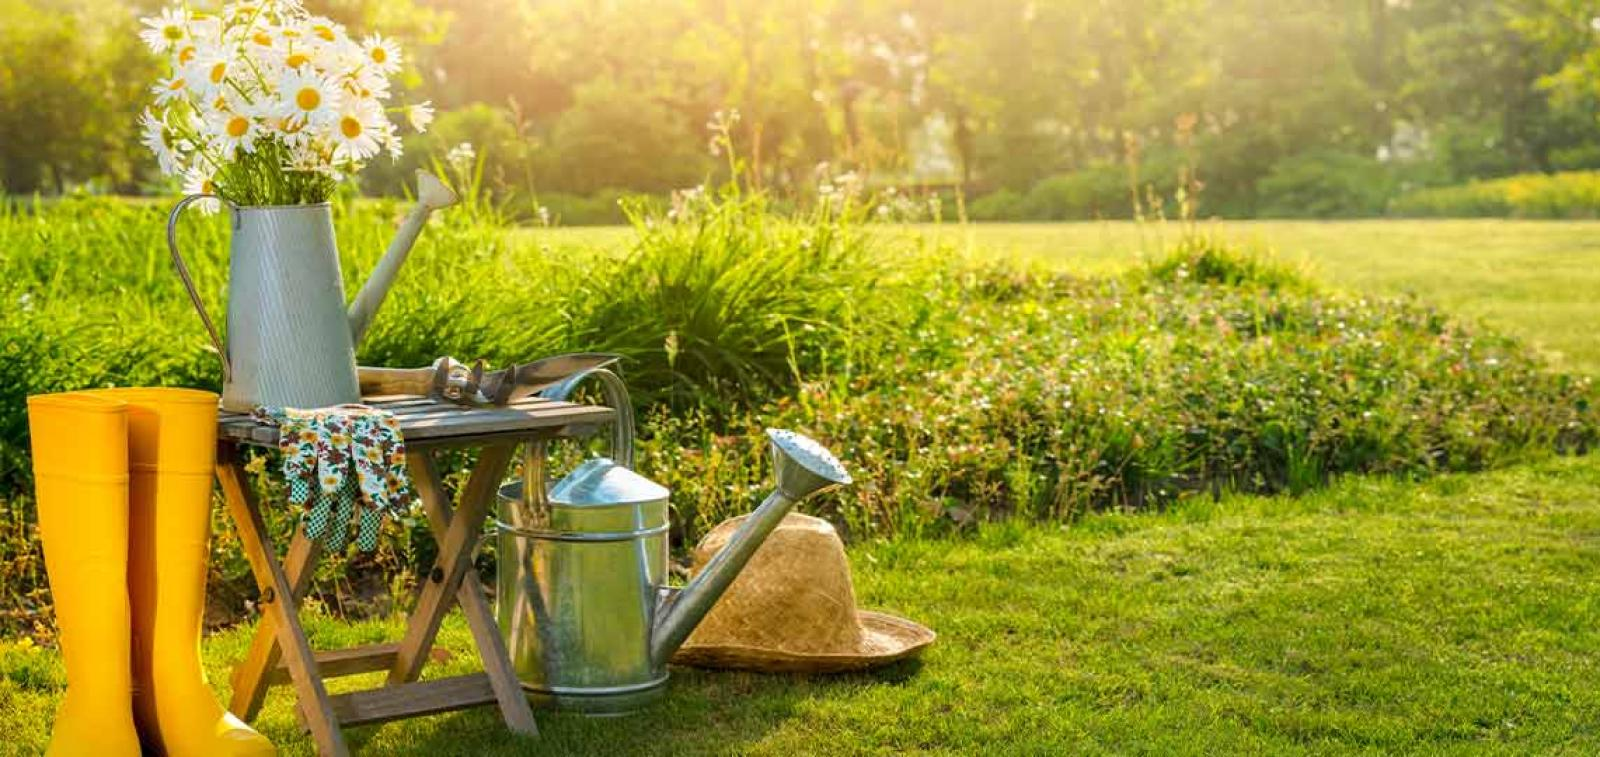 Gardening tools and equipment in a garden on a sunny day